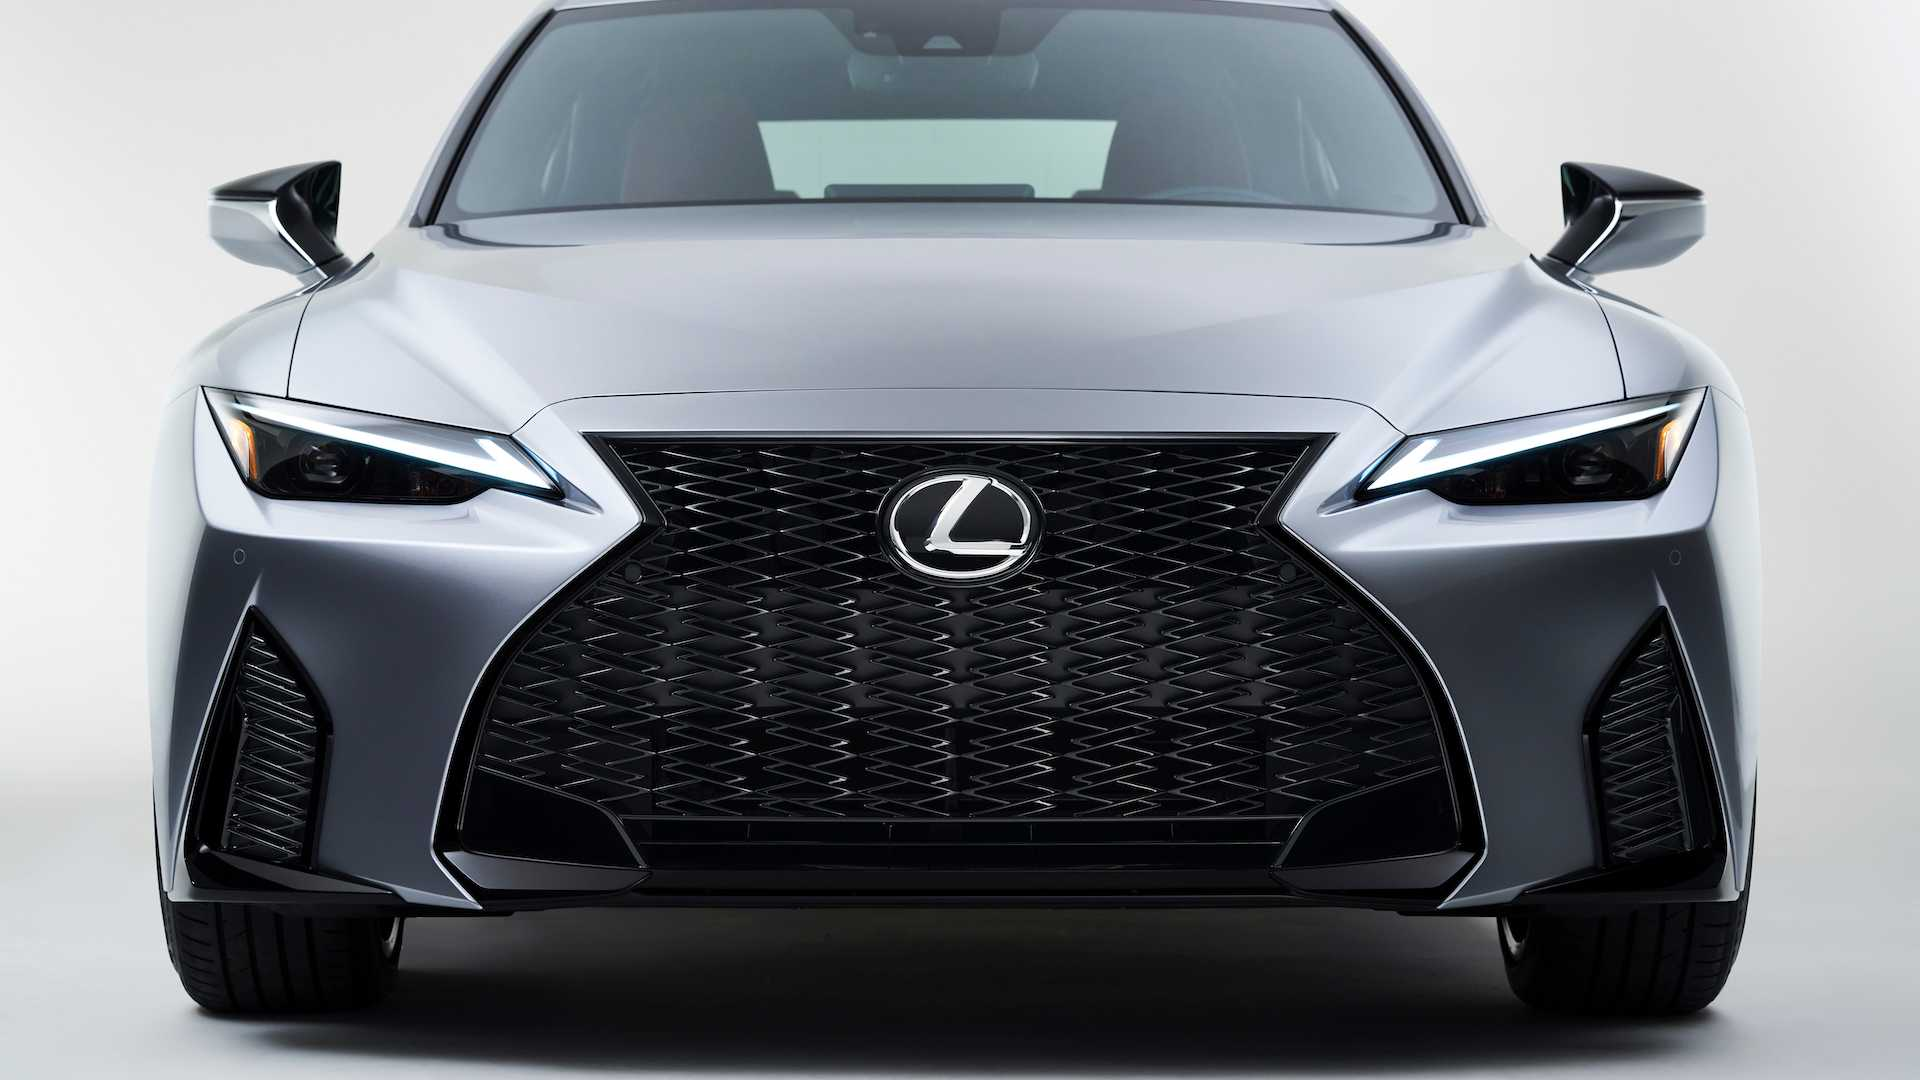 2021-lexus-is-10.jpg